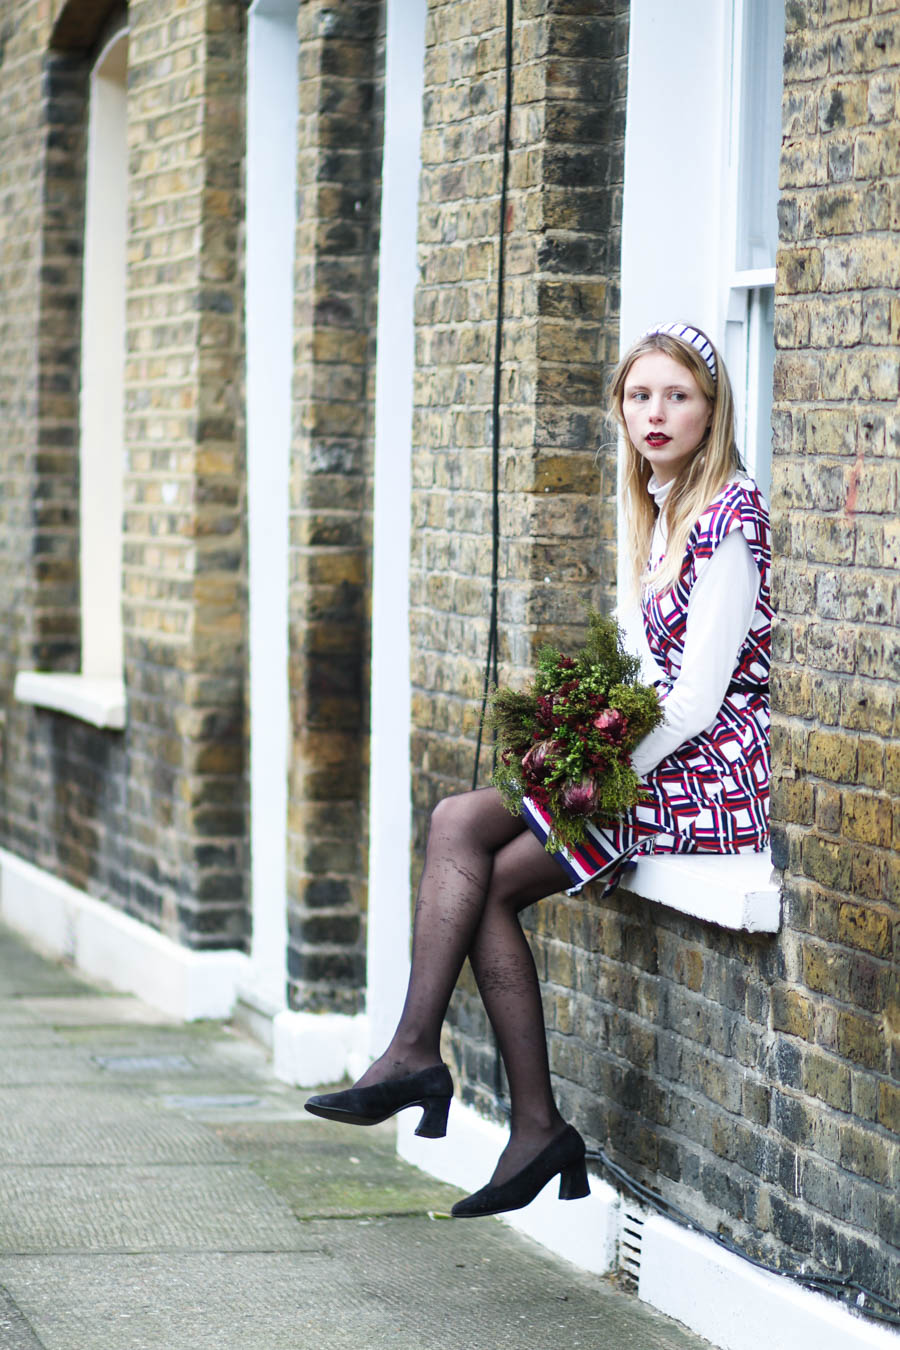 outfit february nemesis babe marie my jensen danish blogger london columbia road flower market 2nd day outfit-7